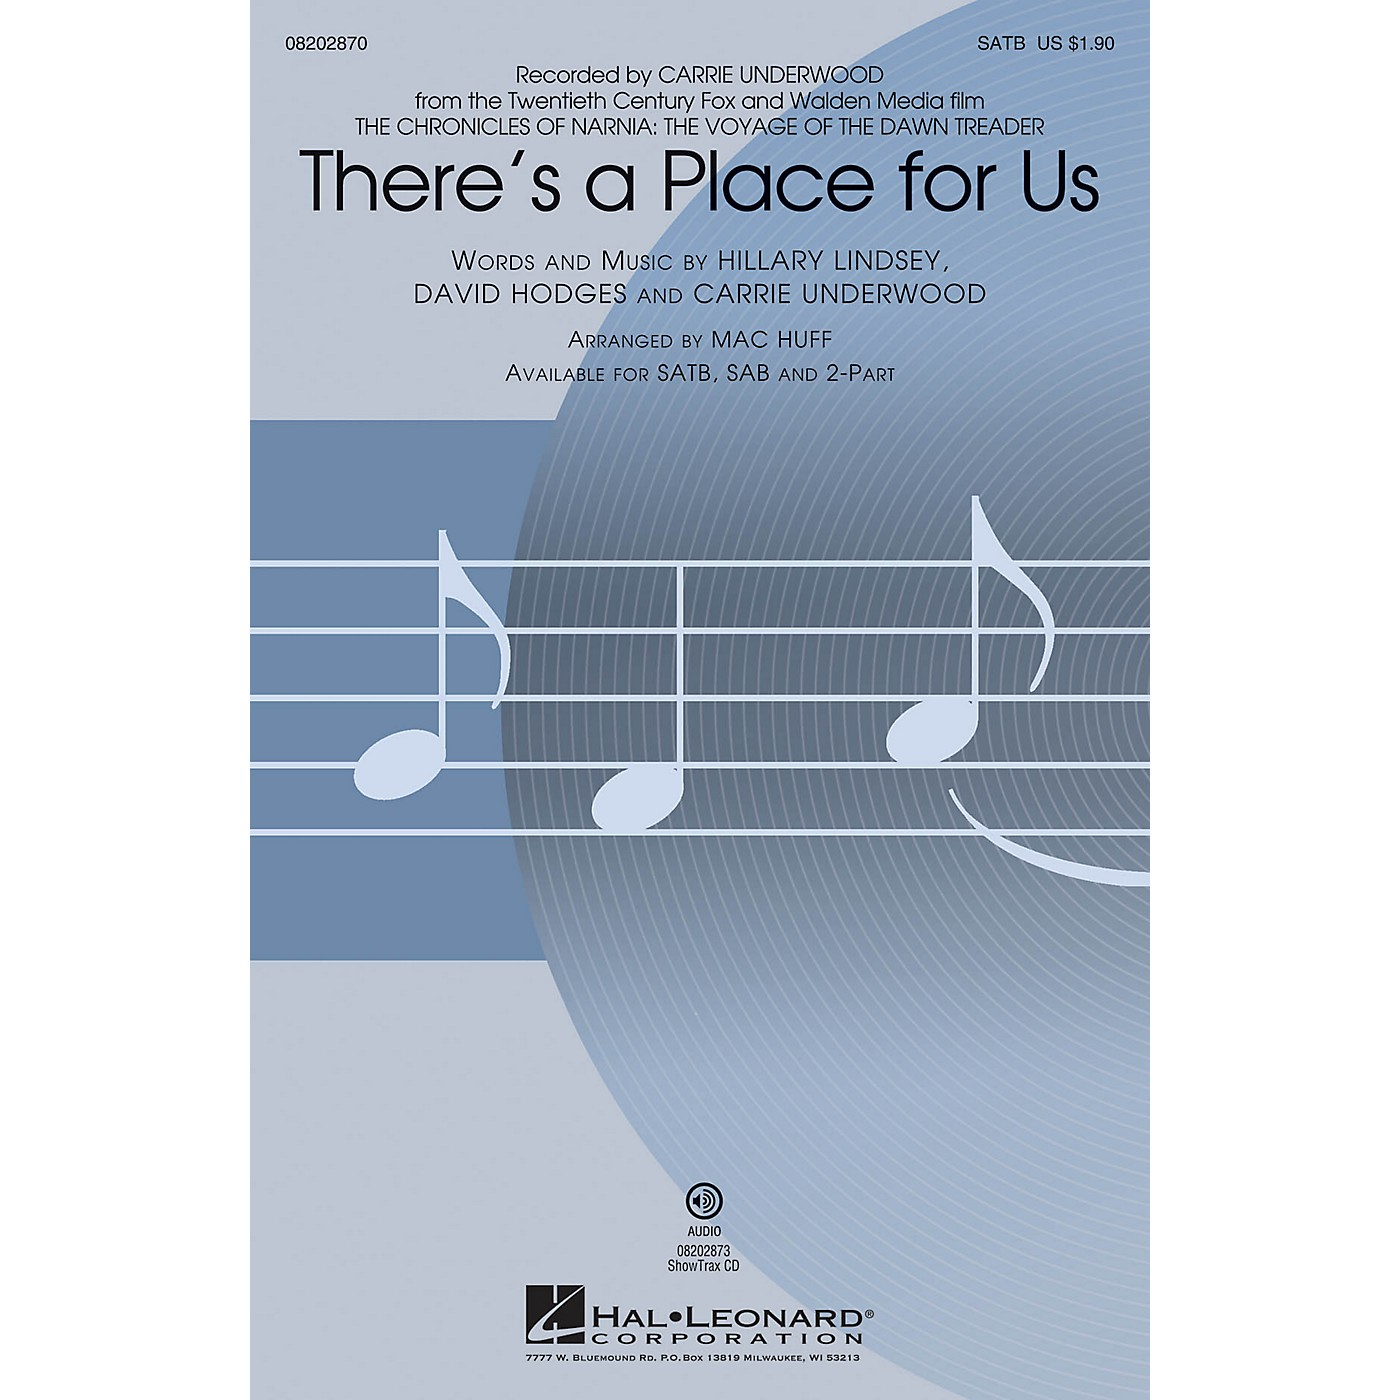 Hal Leonard There's a Place for Us 2-Part by Carrie Underwood Arranged by Mac Huff thumbnail